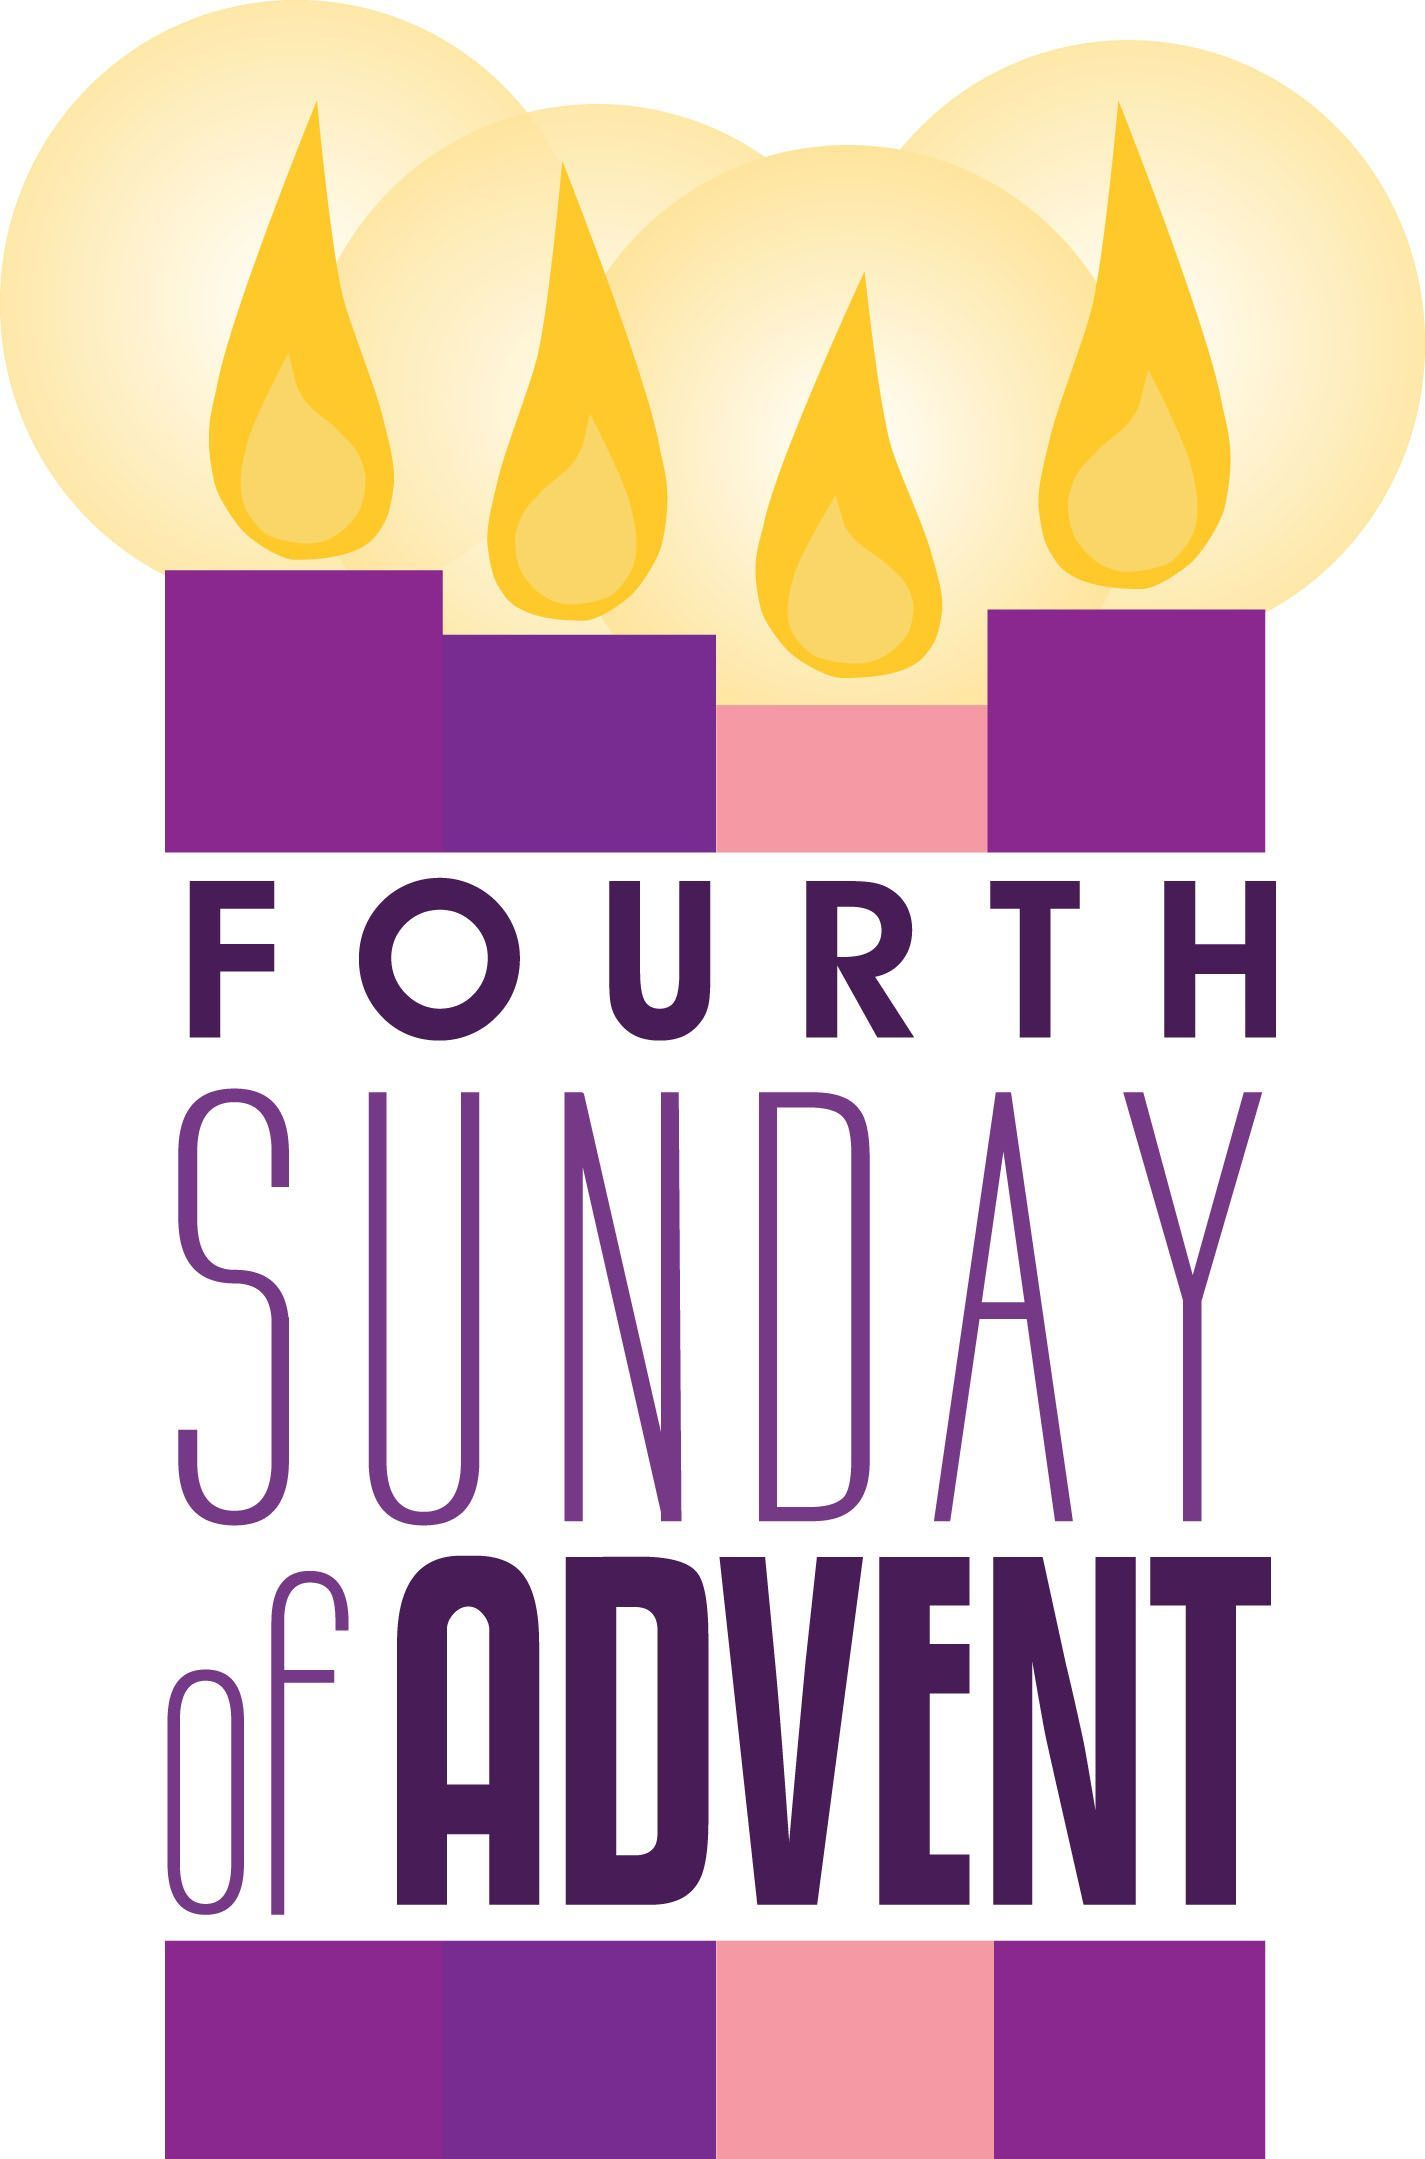 4th sunday of advent clipart 2 » Clipart Portal.